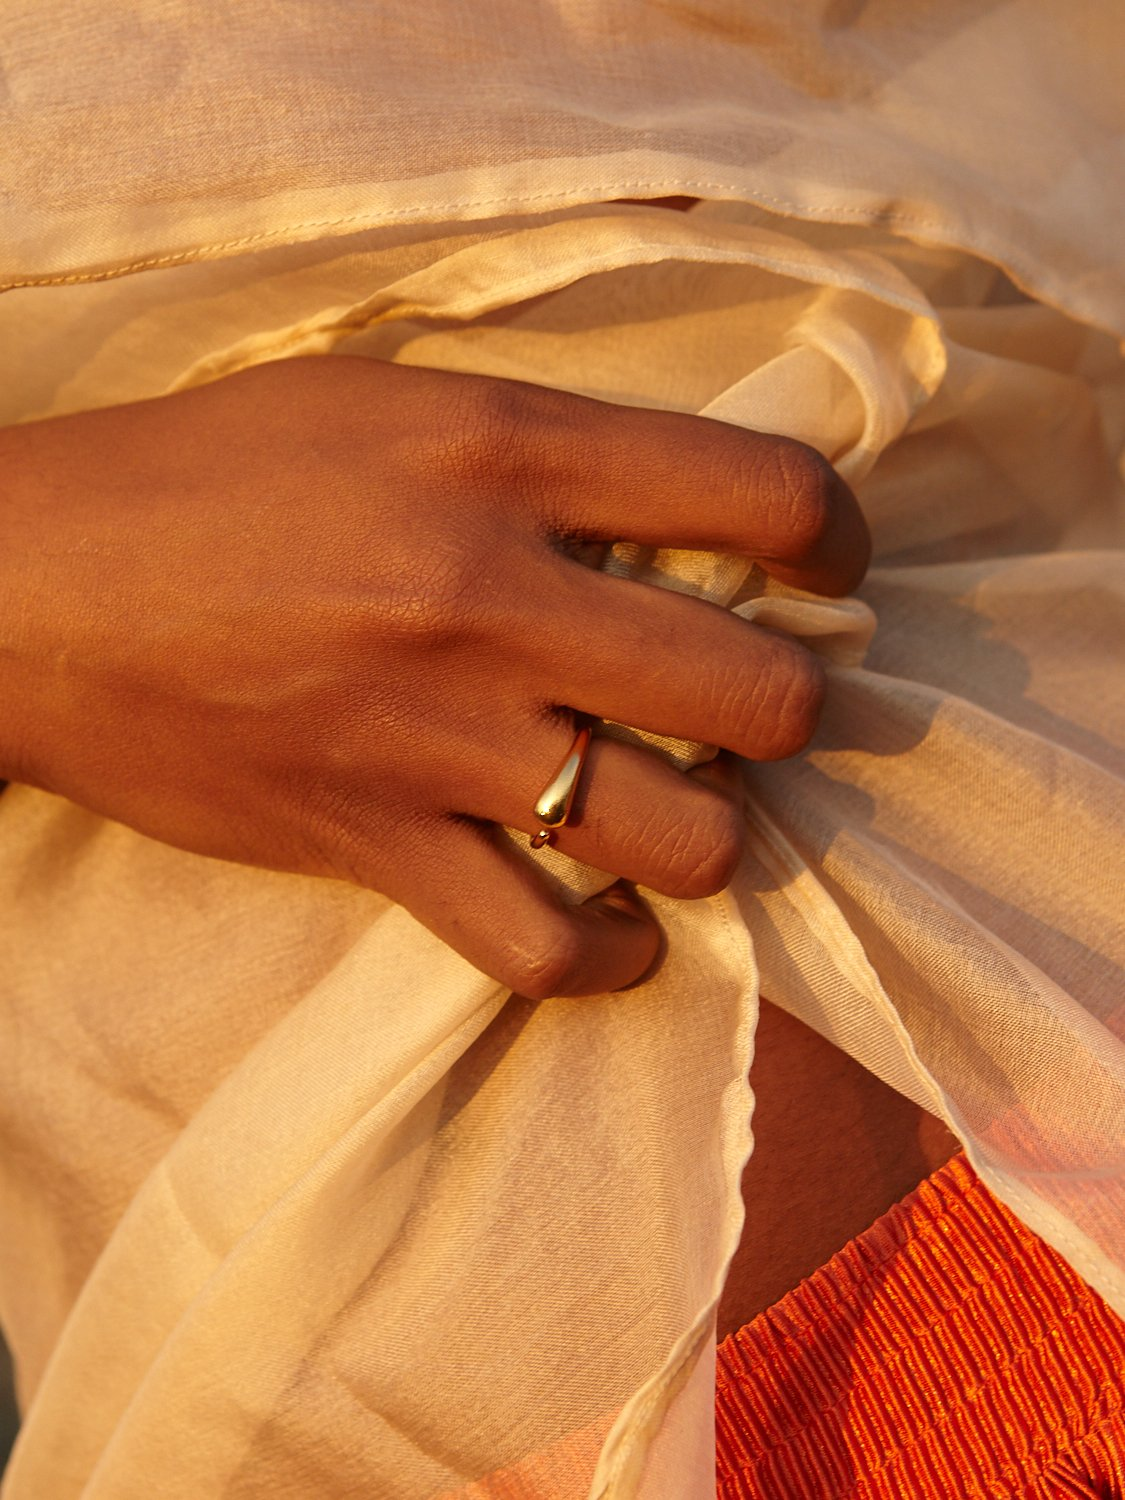 hand model wearing gold ring